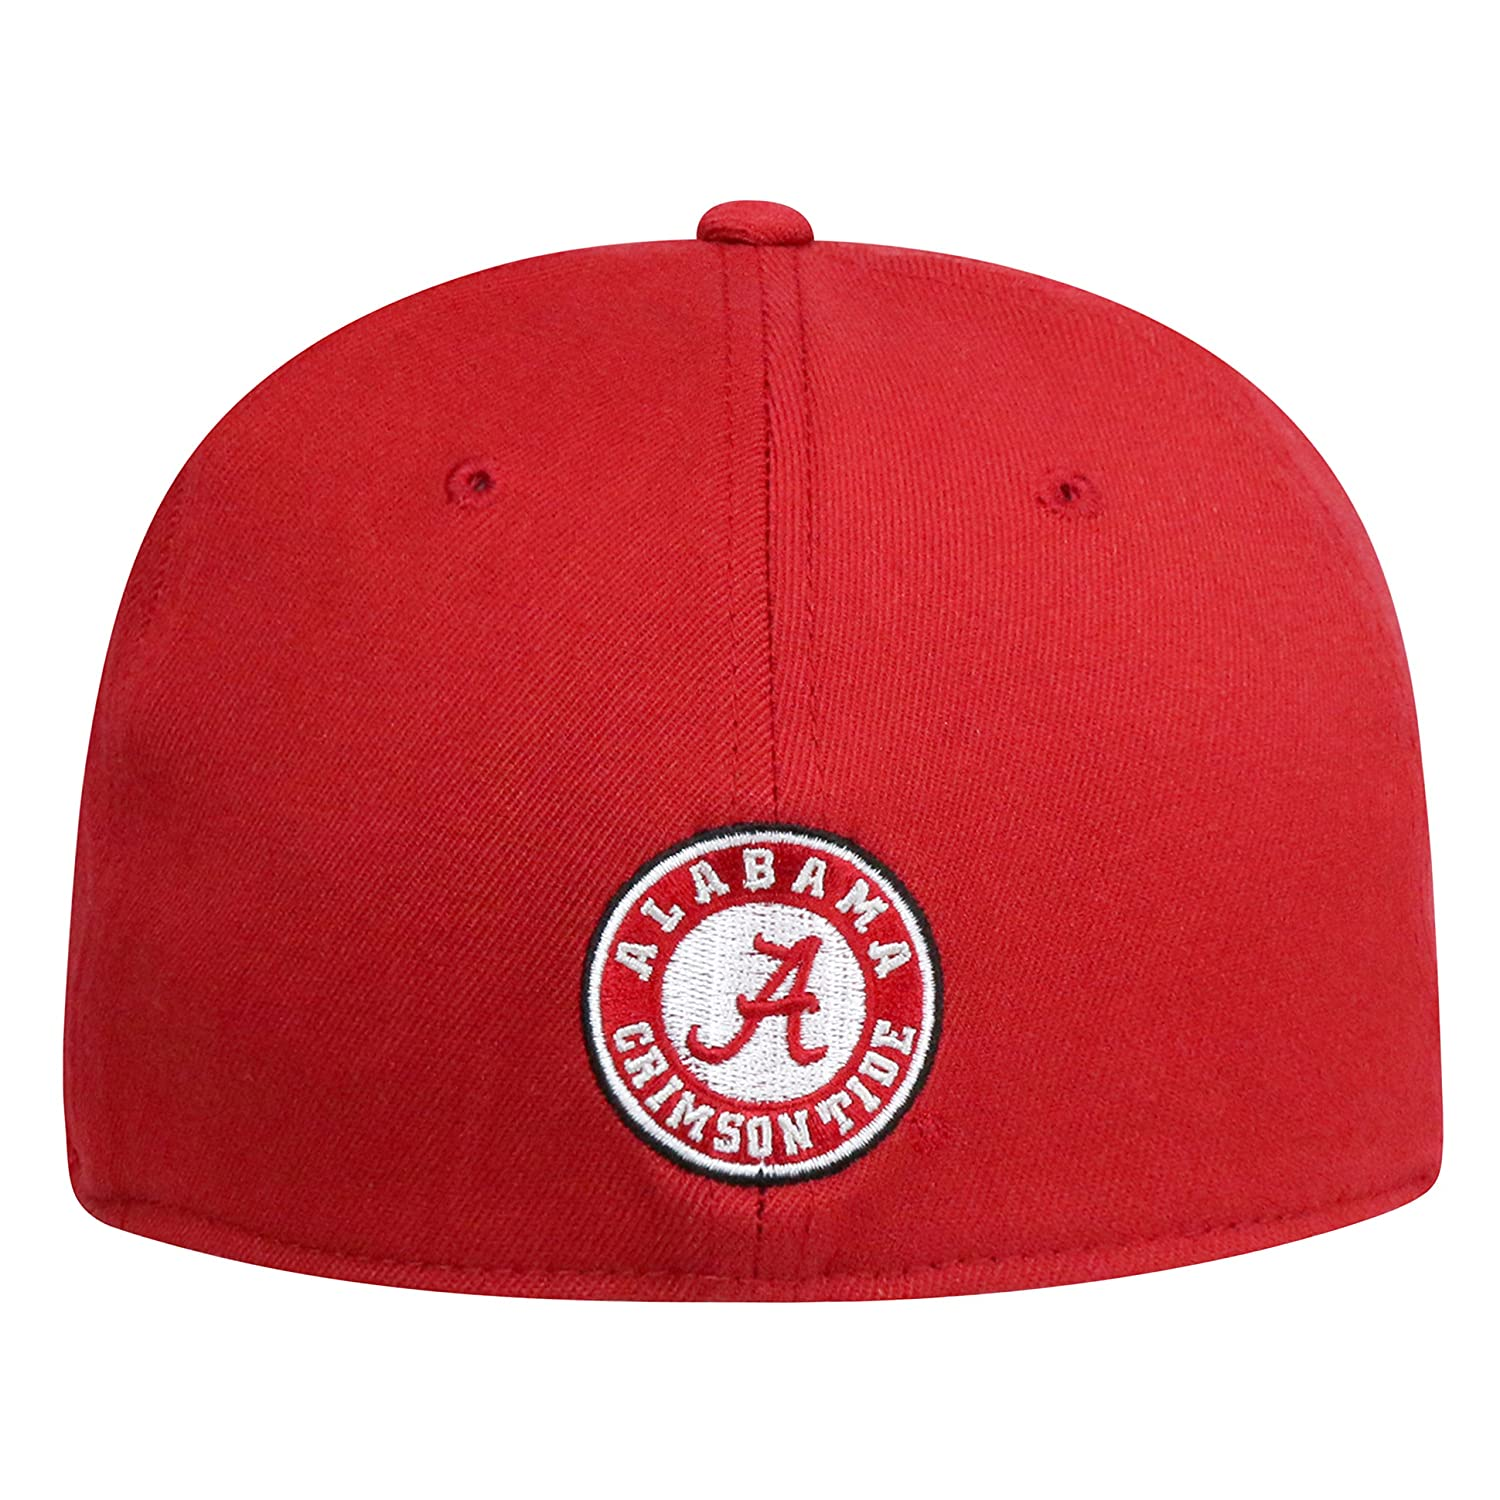 new style 6eae1 a8869 Amazon.com   Top of the World NCAA-Premium Collection-One-Fit-Memory Fit-Hat  Cap   Clothing